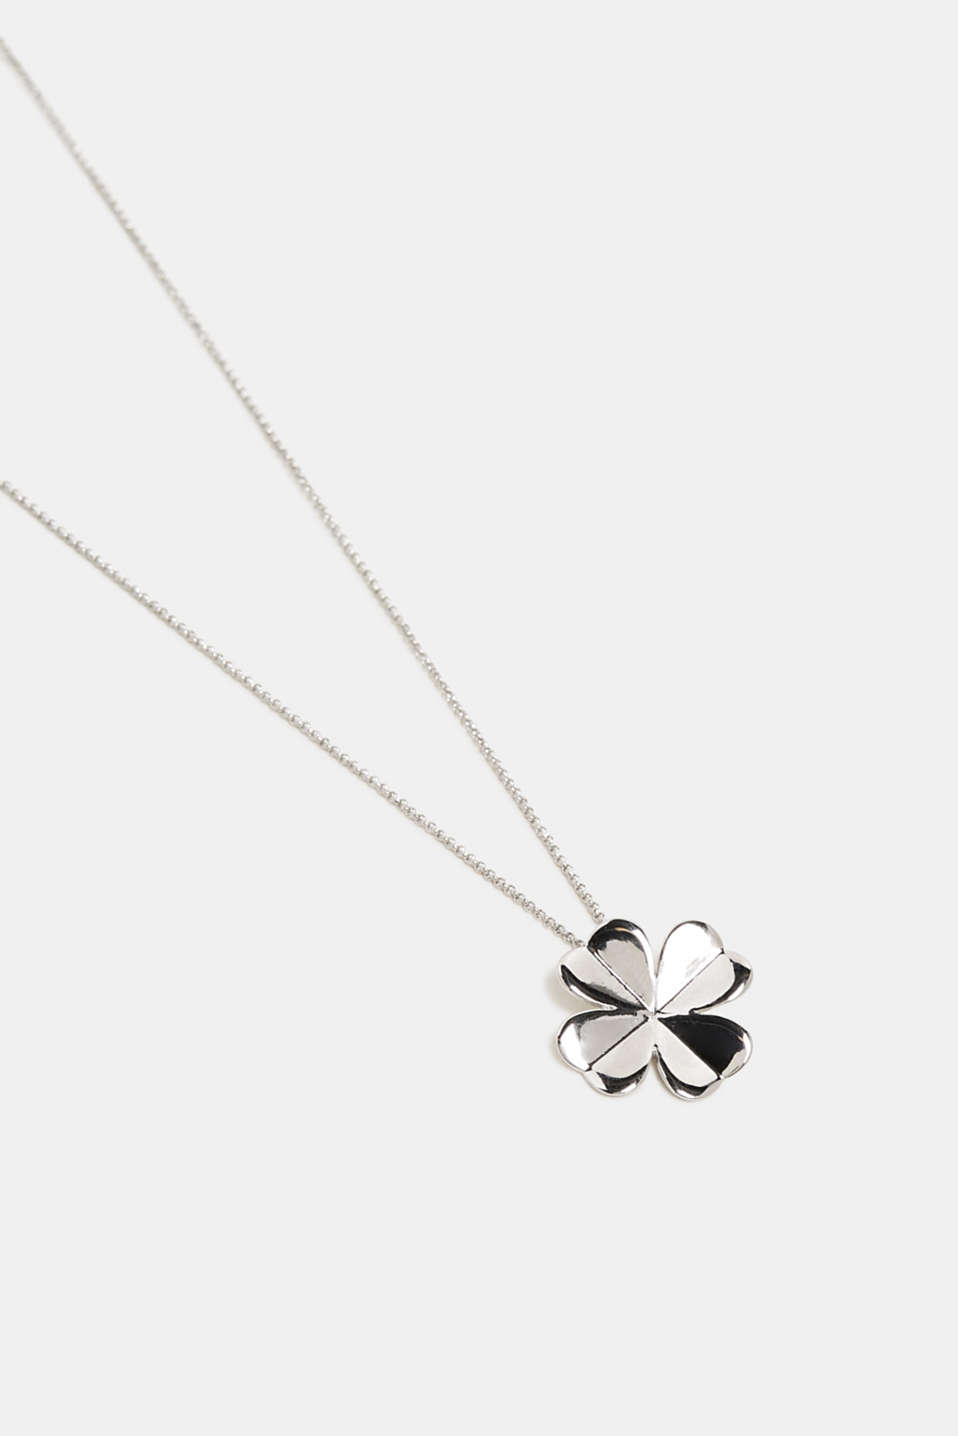 Necklace with a metal clover pendant, SILVER, detail image number 0